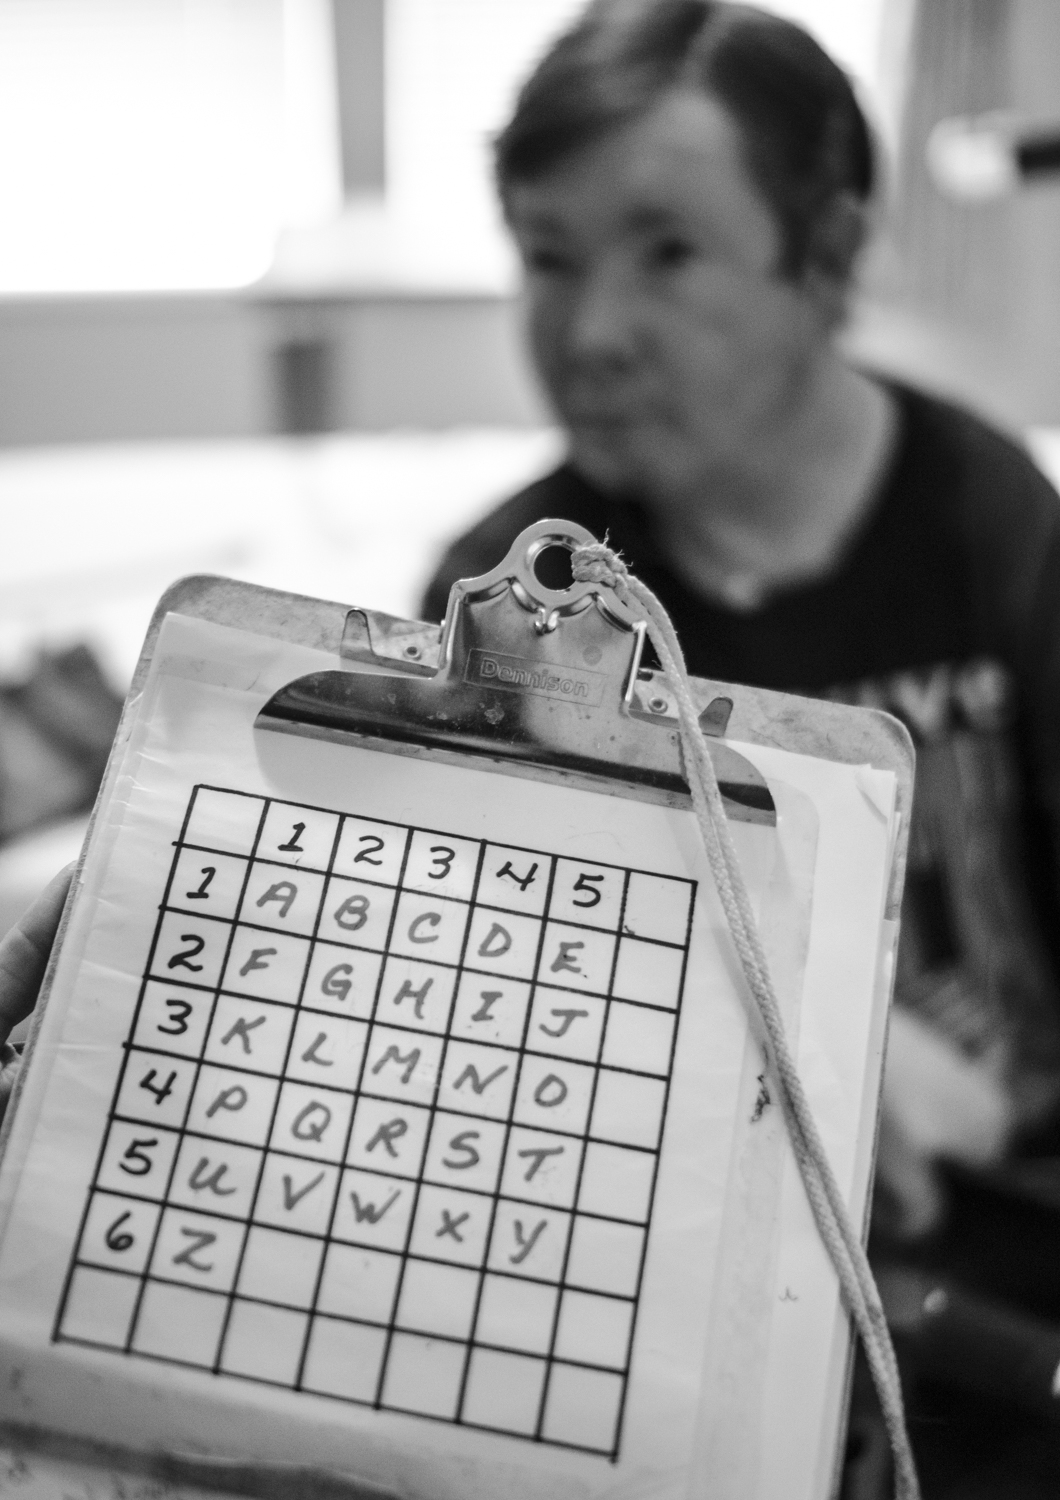 Beany and Stephanie's communication hinges on a simple system of letters and numbers laid out in grid. By blinking Beany can indicate a column and then a row slowly amassing words and sentences.